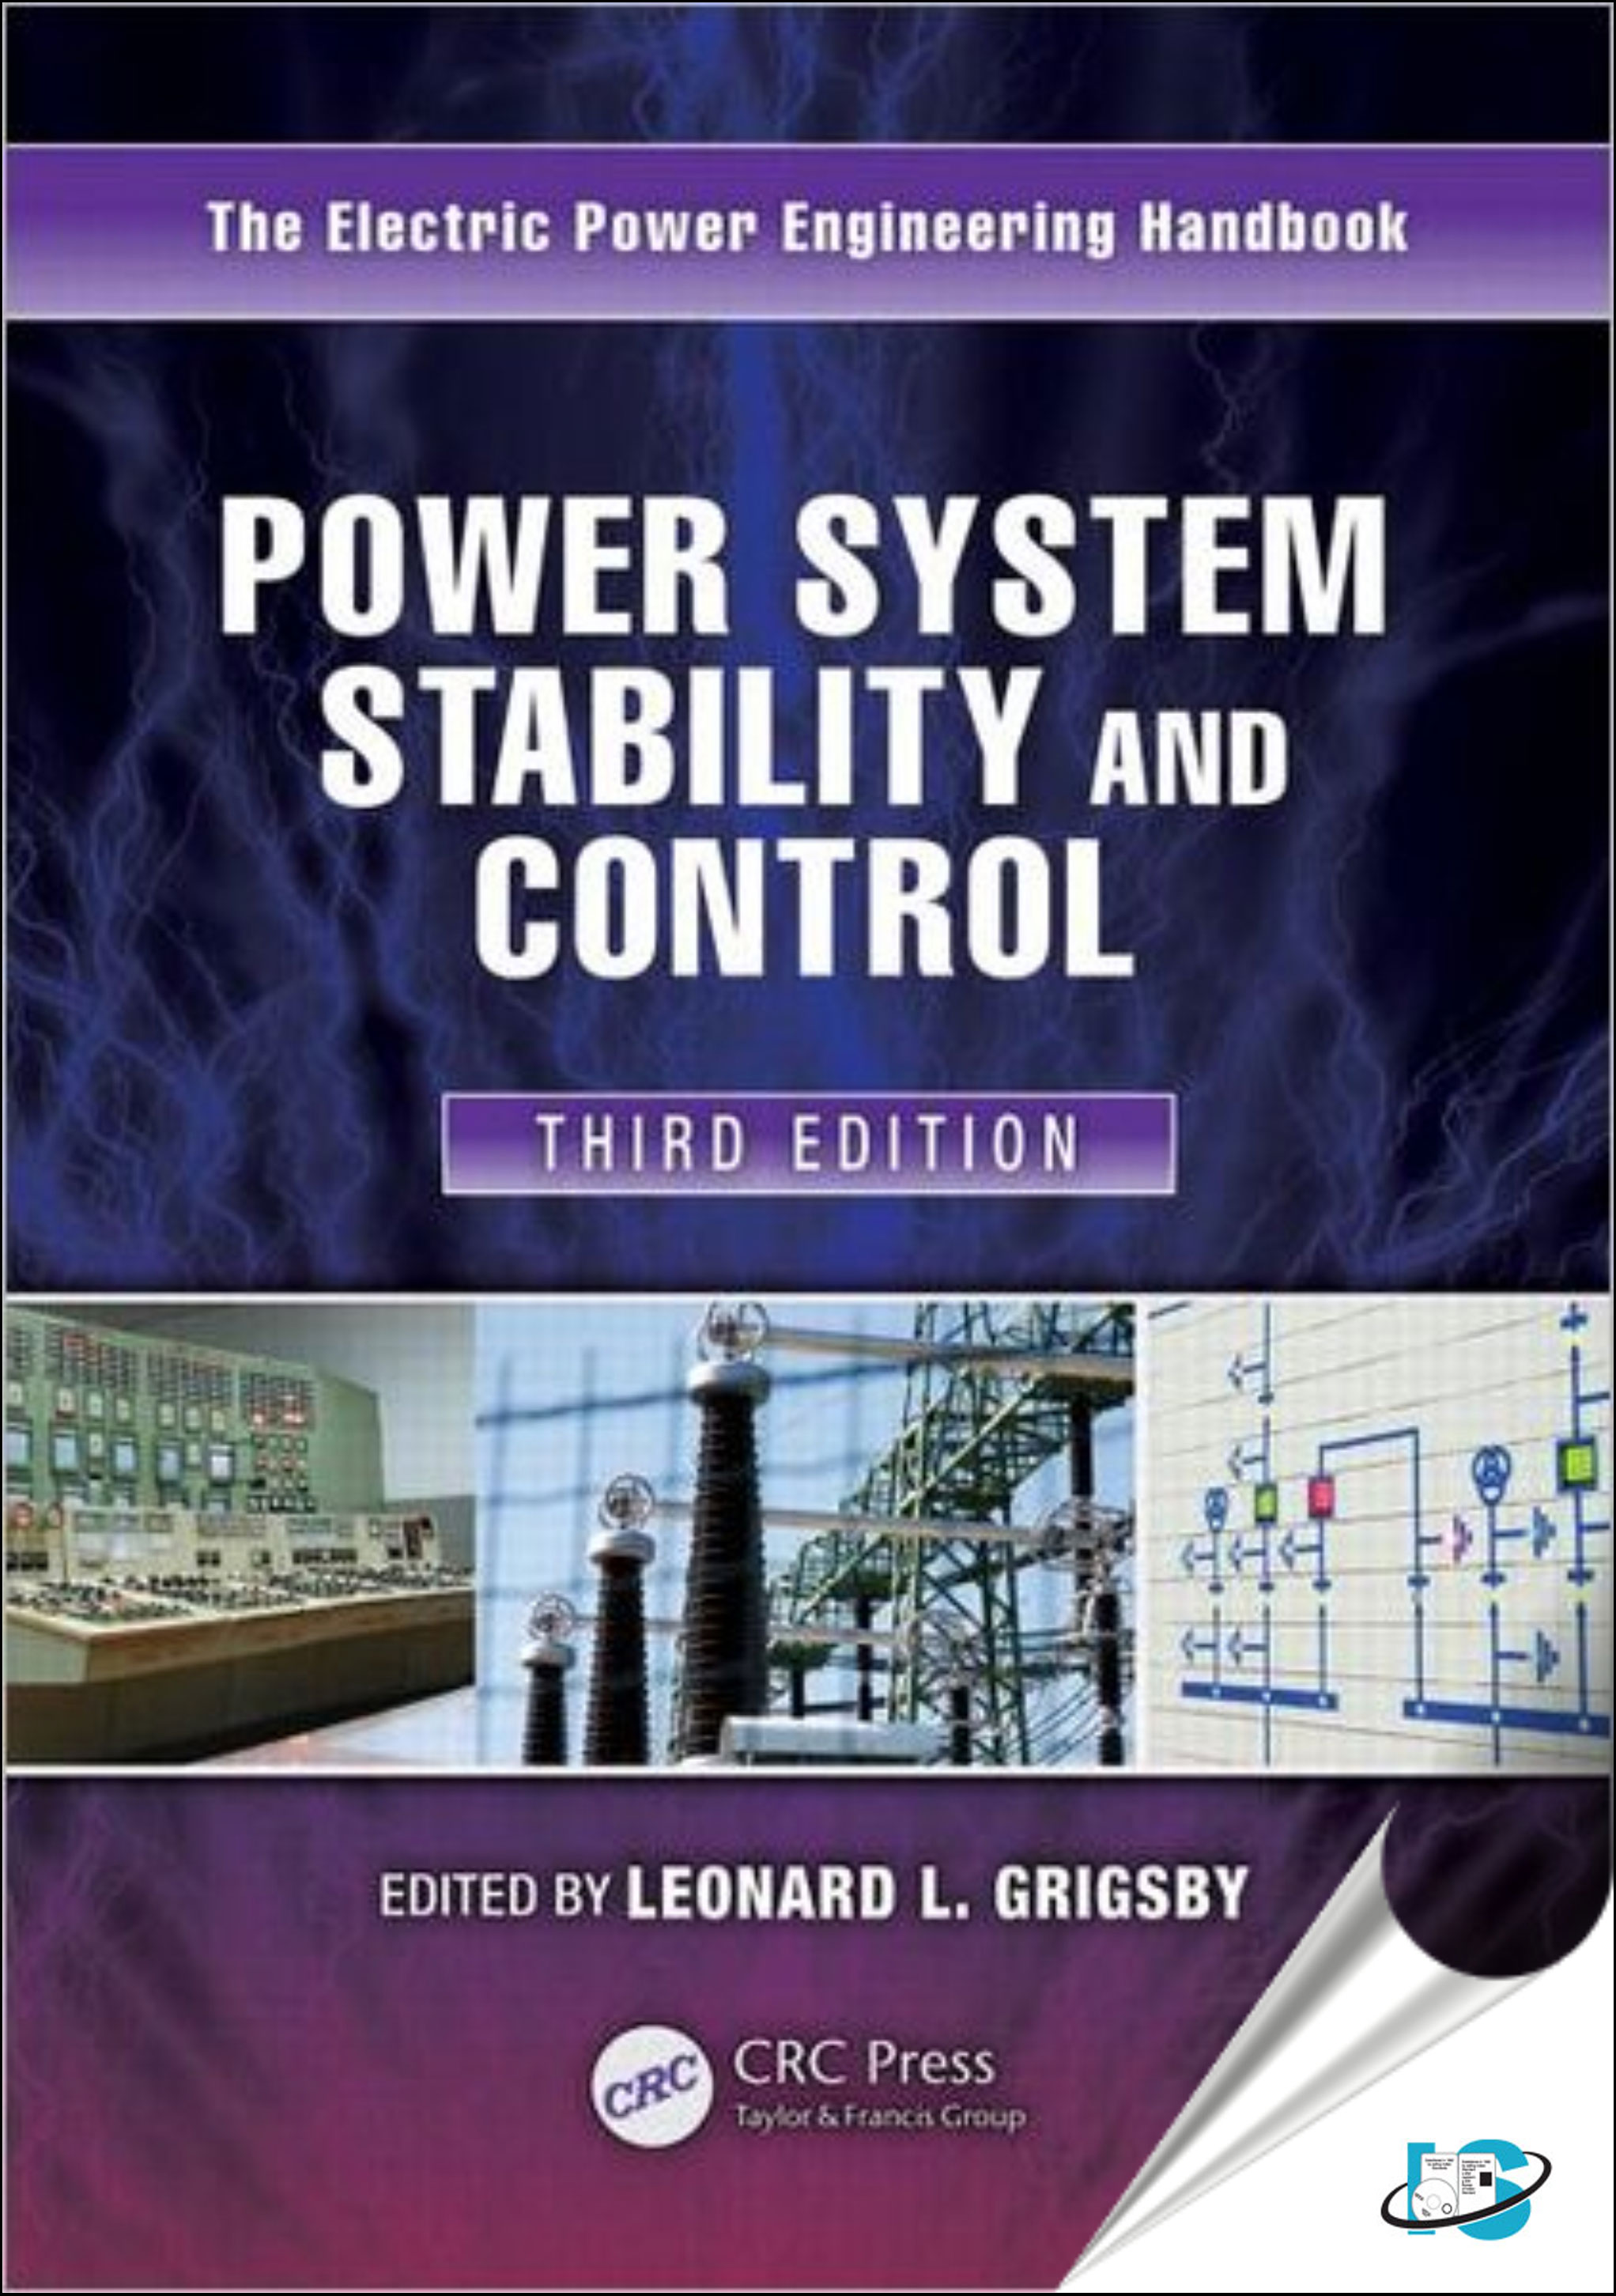 power system stabilizer thesis In this paper, power system stabilizer (pss) and automatic voltage regulator (avr) are coordinated to improve the transient stability of generator in power system coordinated design problem of avr and pss is.